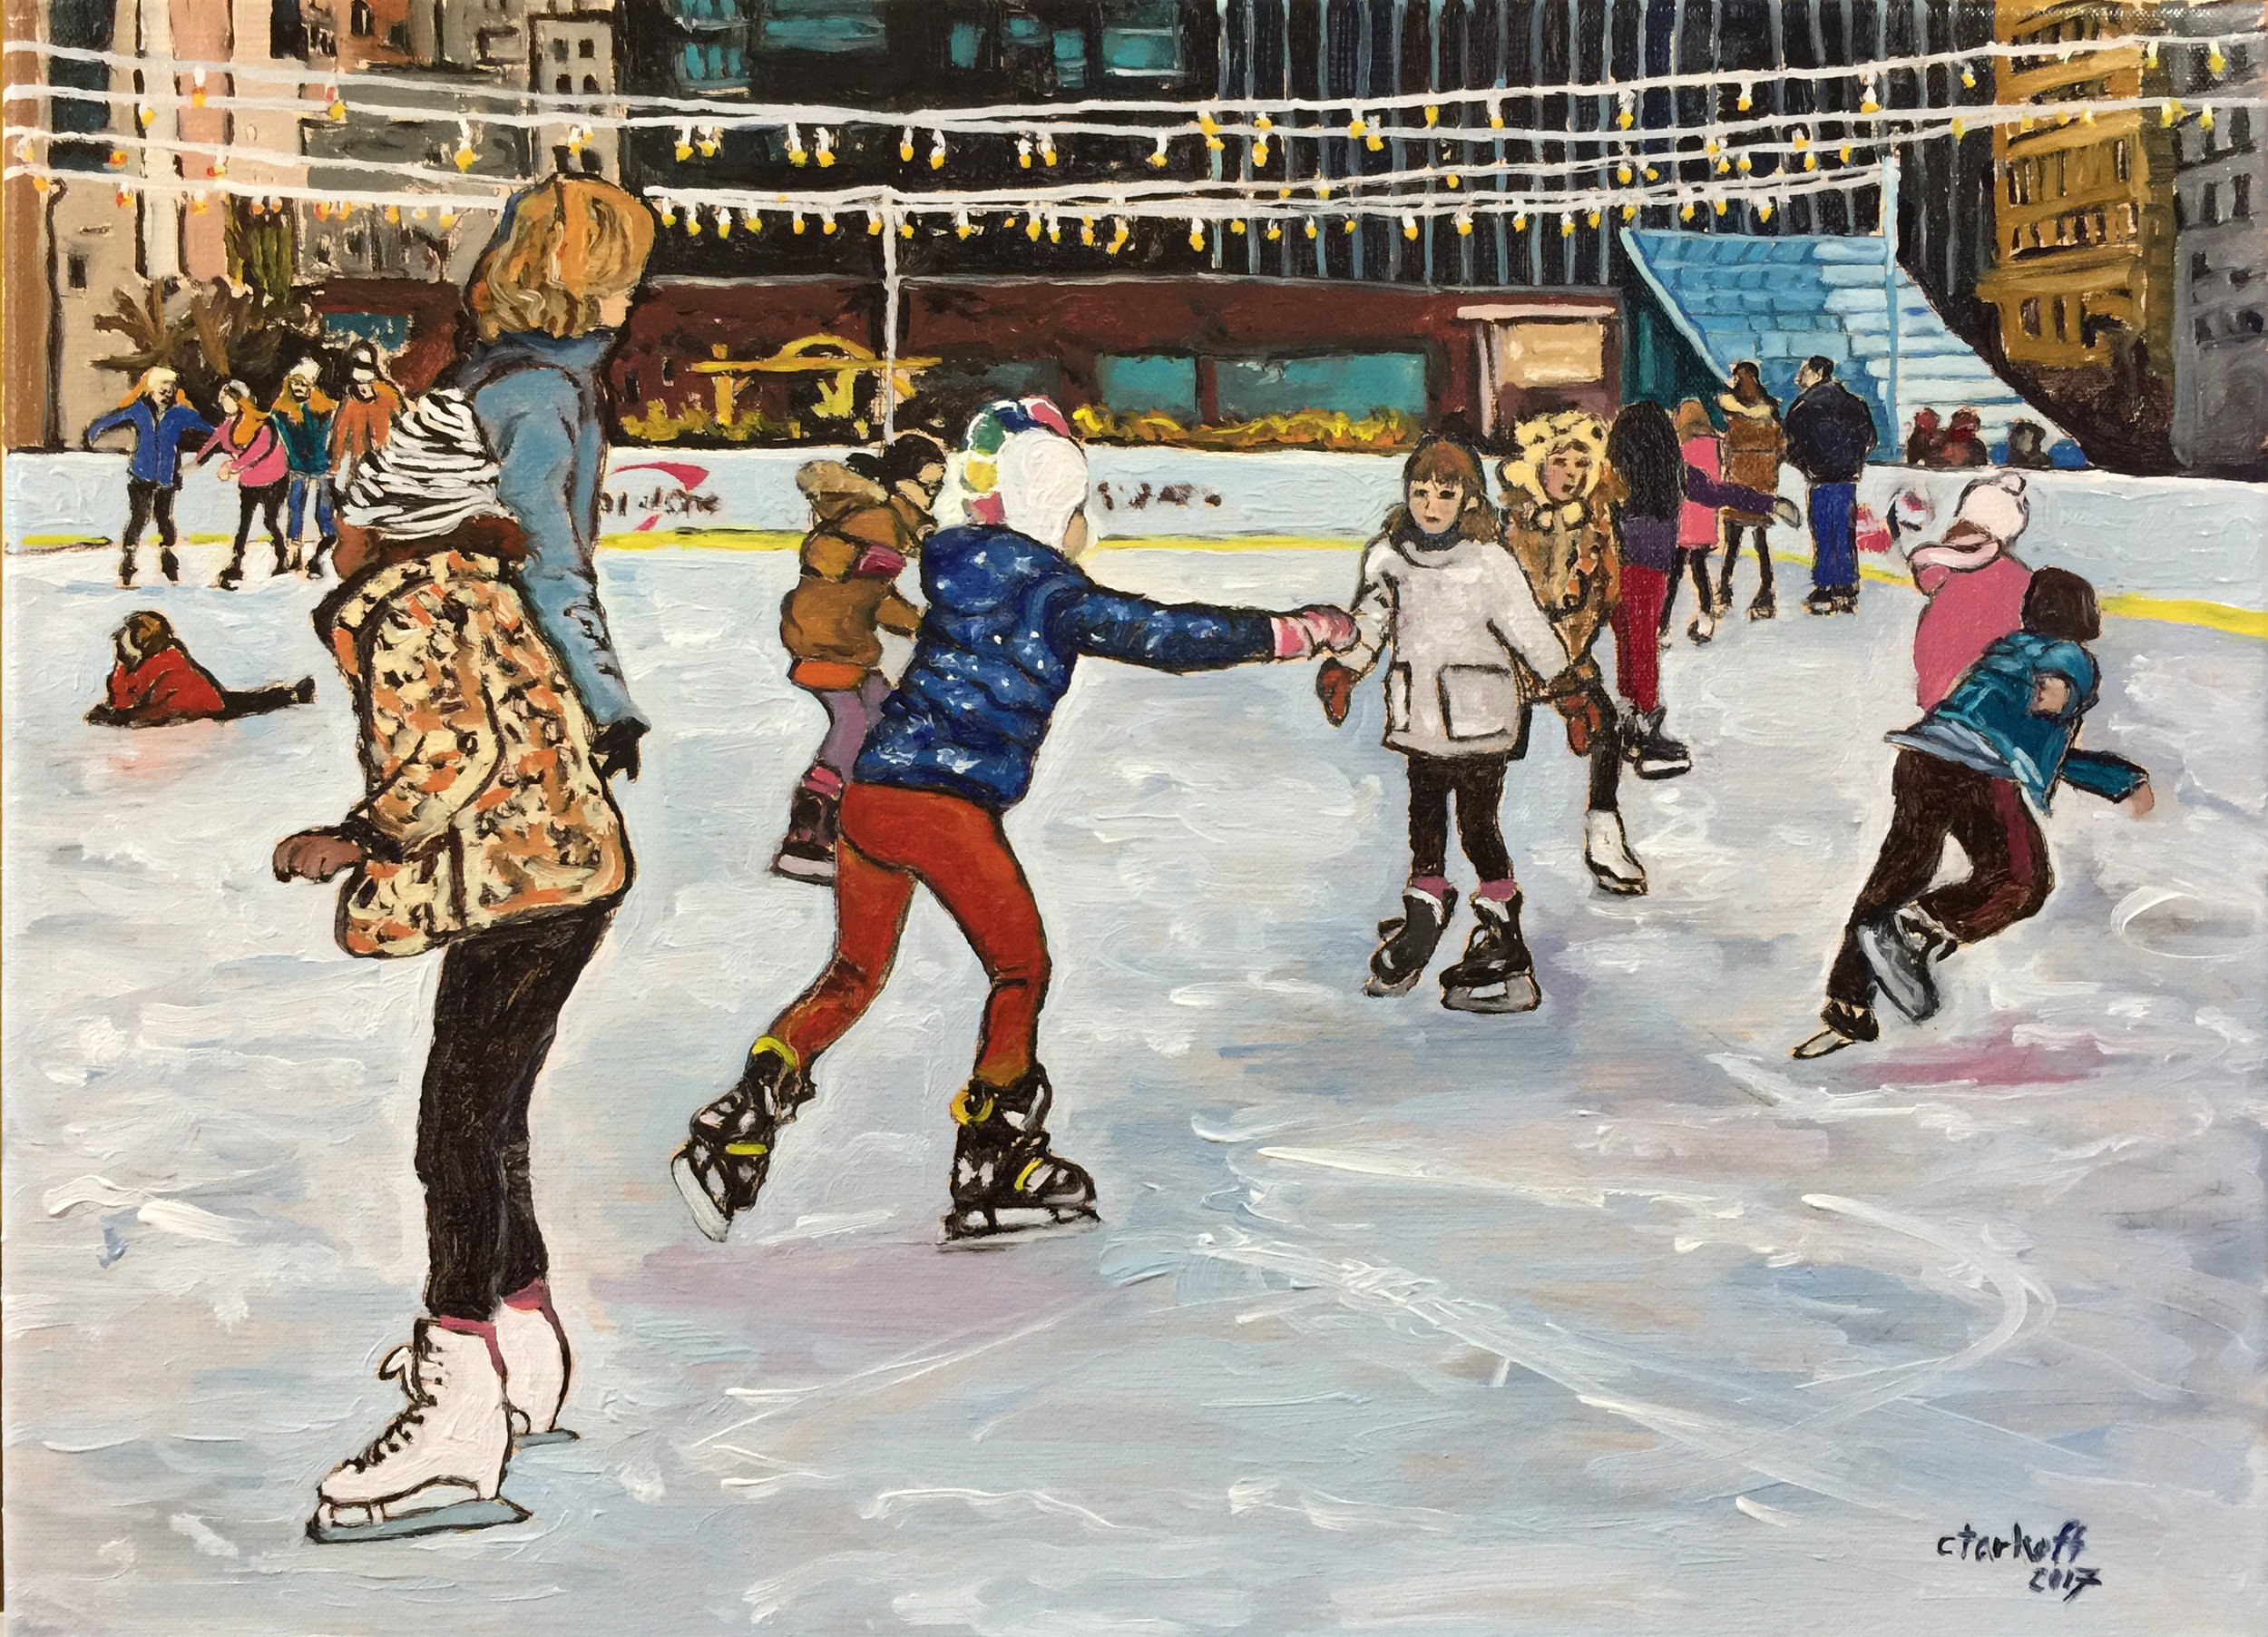 """Iceskating in Dilworth Park on a Sunday Afternoon."" Oil on stretched Canvas. 12x16. Framed, wired, and ready to hang in your home or office!    Winter in July Sale Price is $288   . Regular Price: $576."